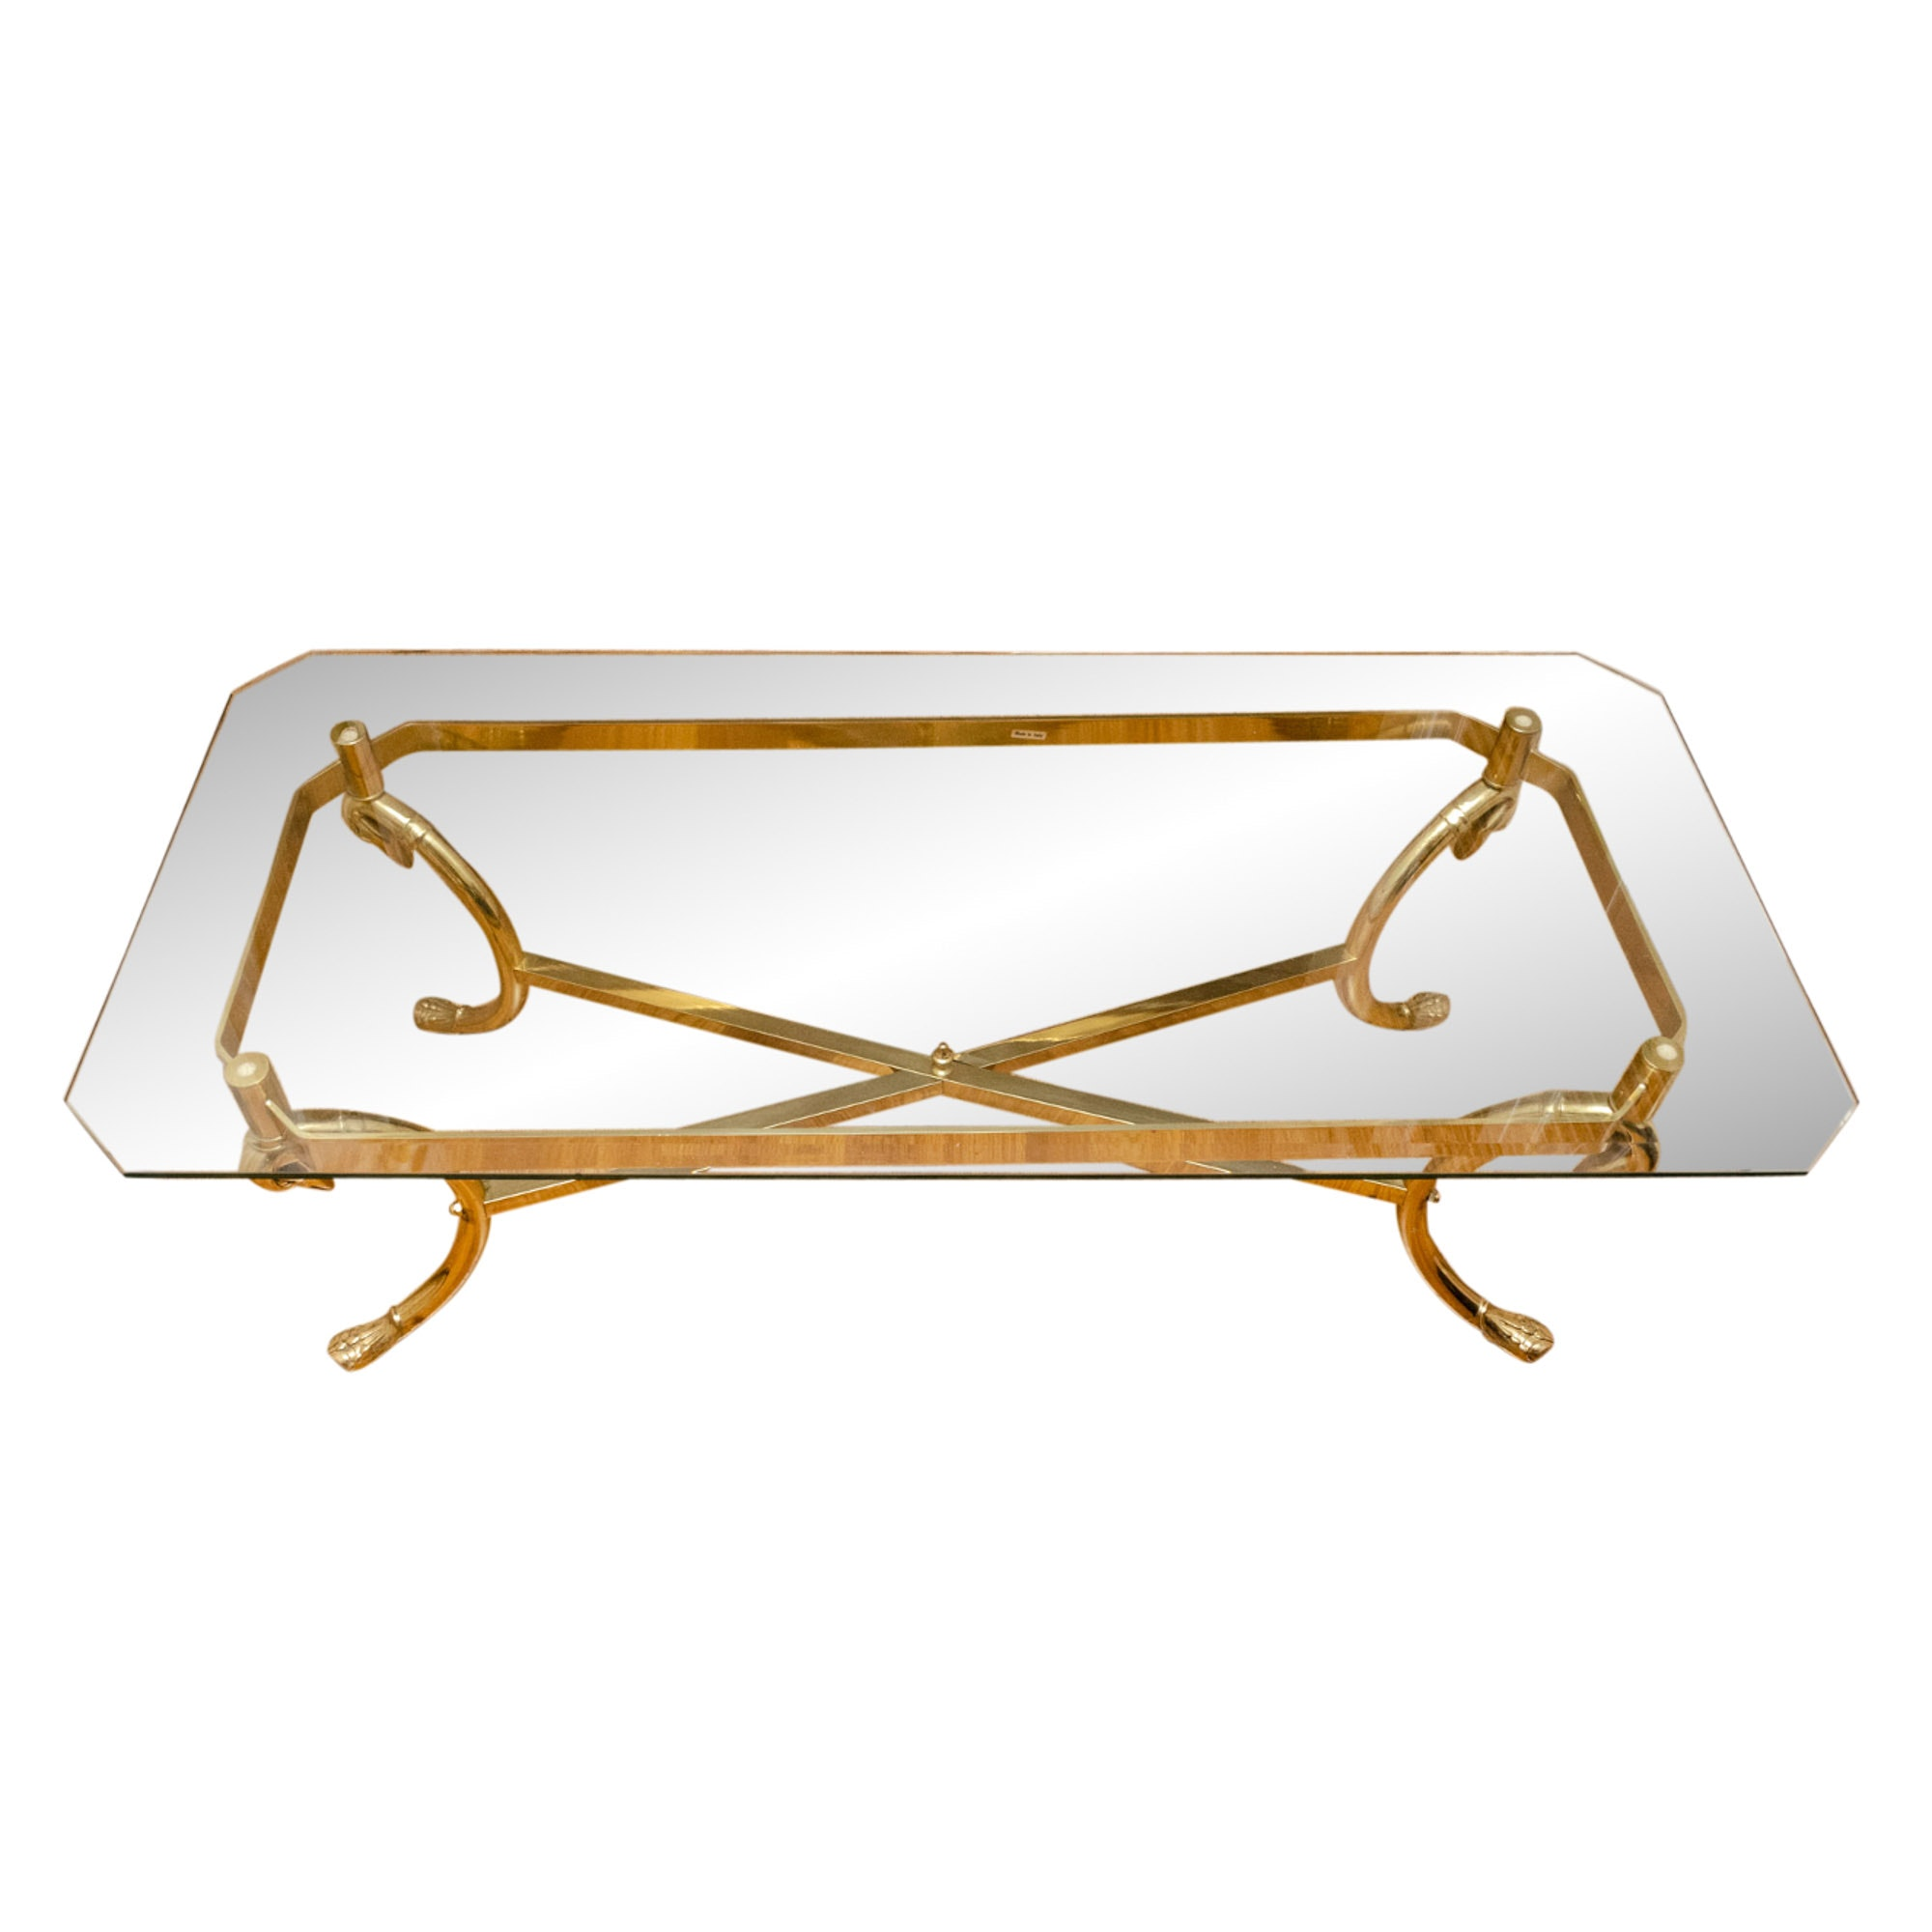 Regency Style Glass and Brass Coffee Table, 20th Century